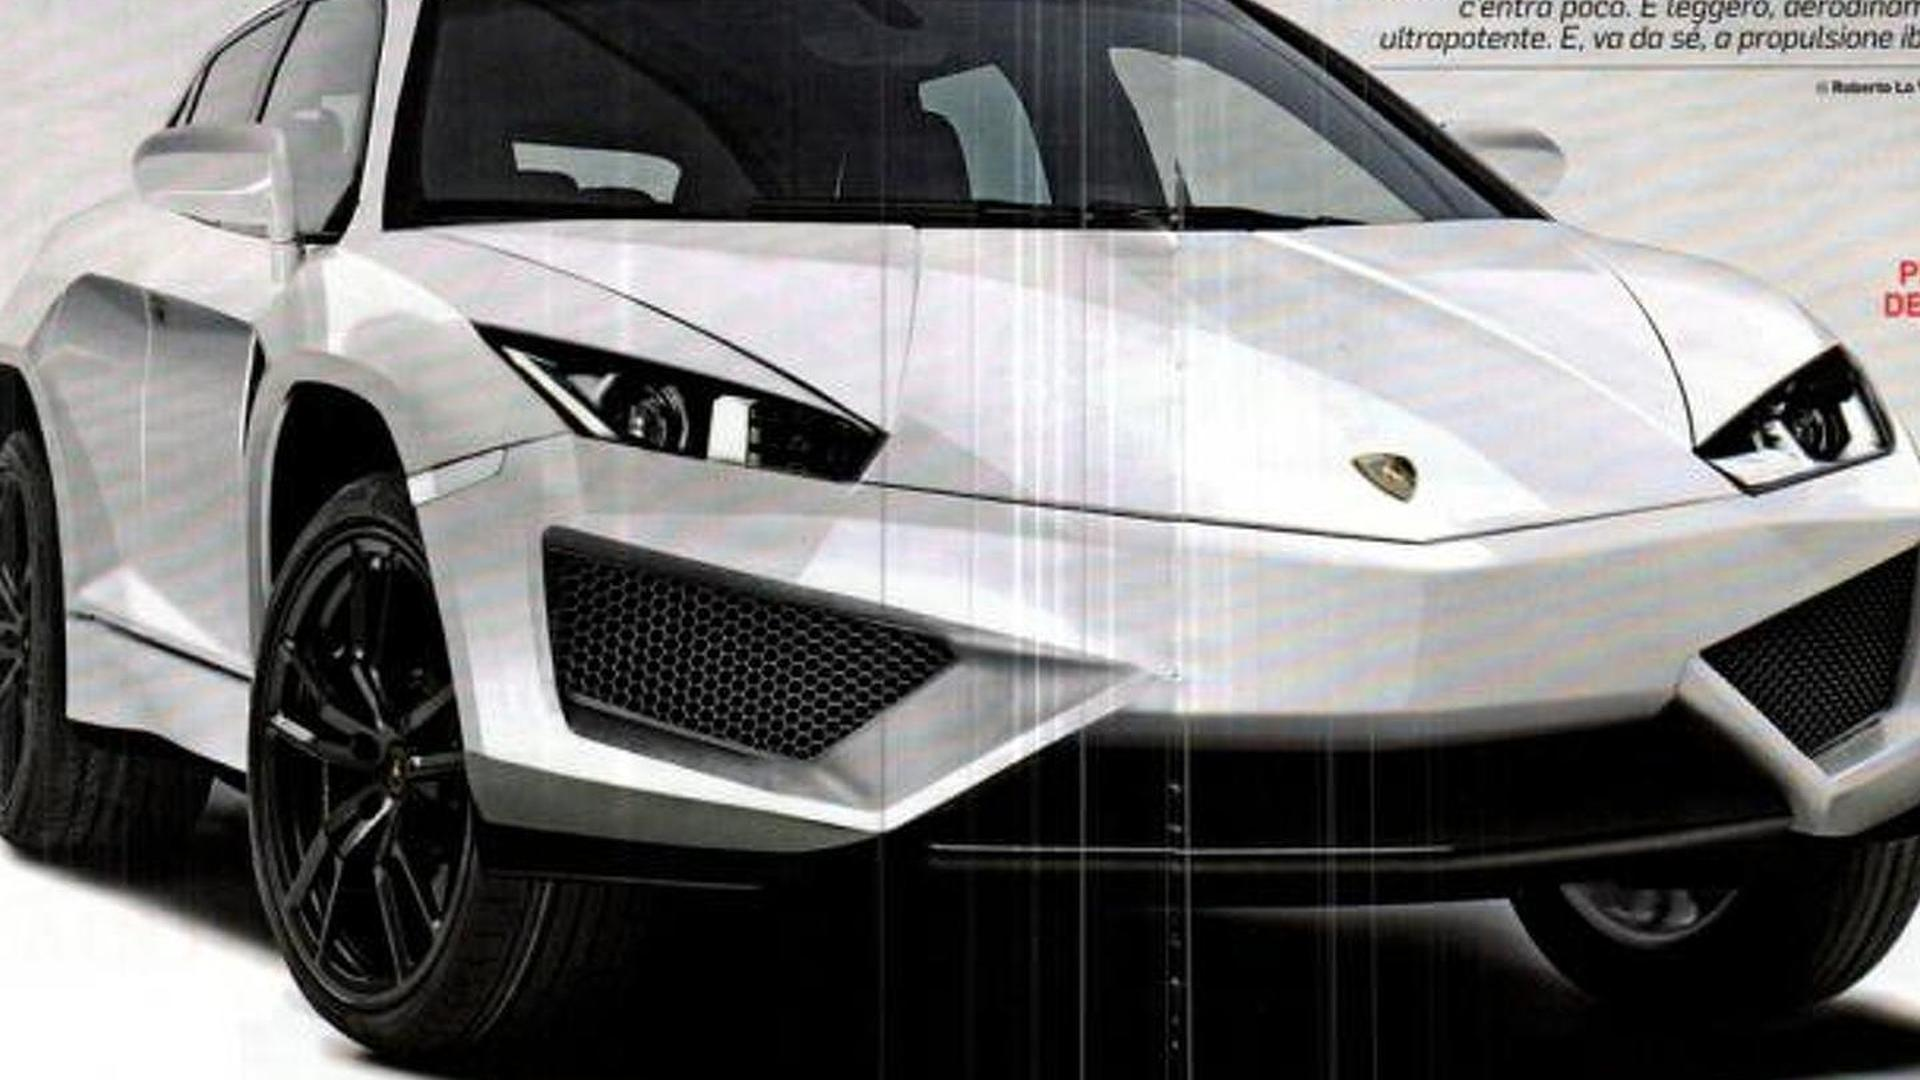 Lamborghini neither confirms nor denies SUV reports - code name LB 736